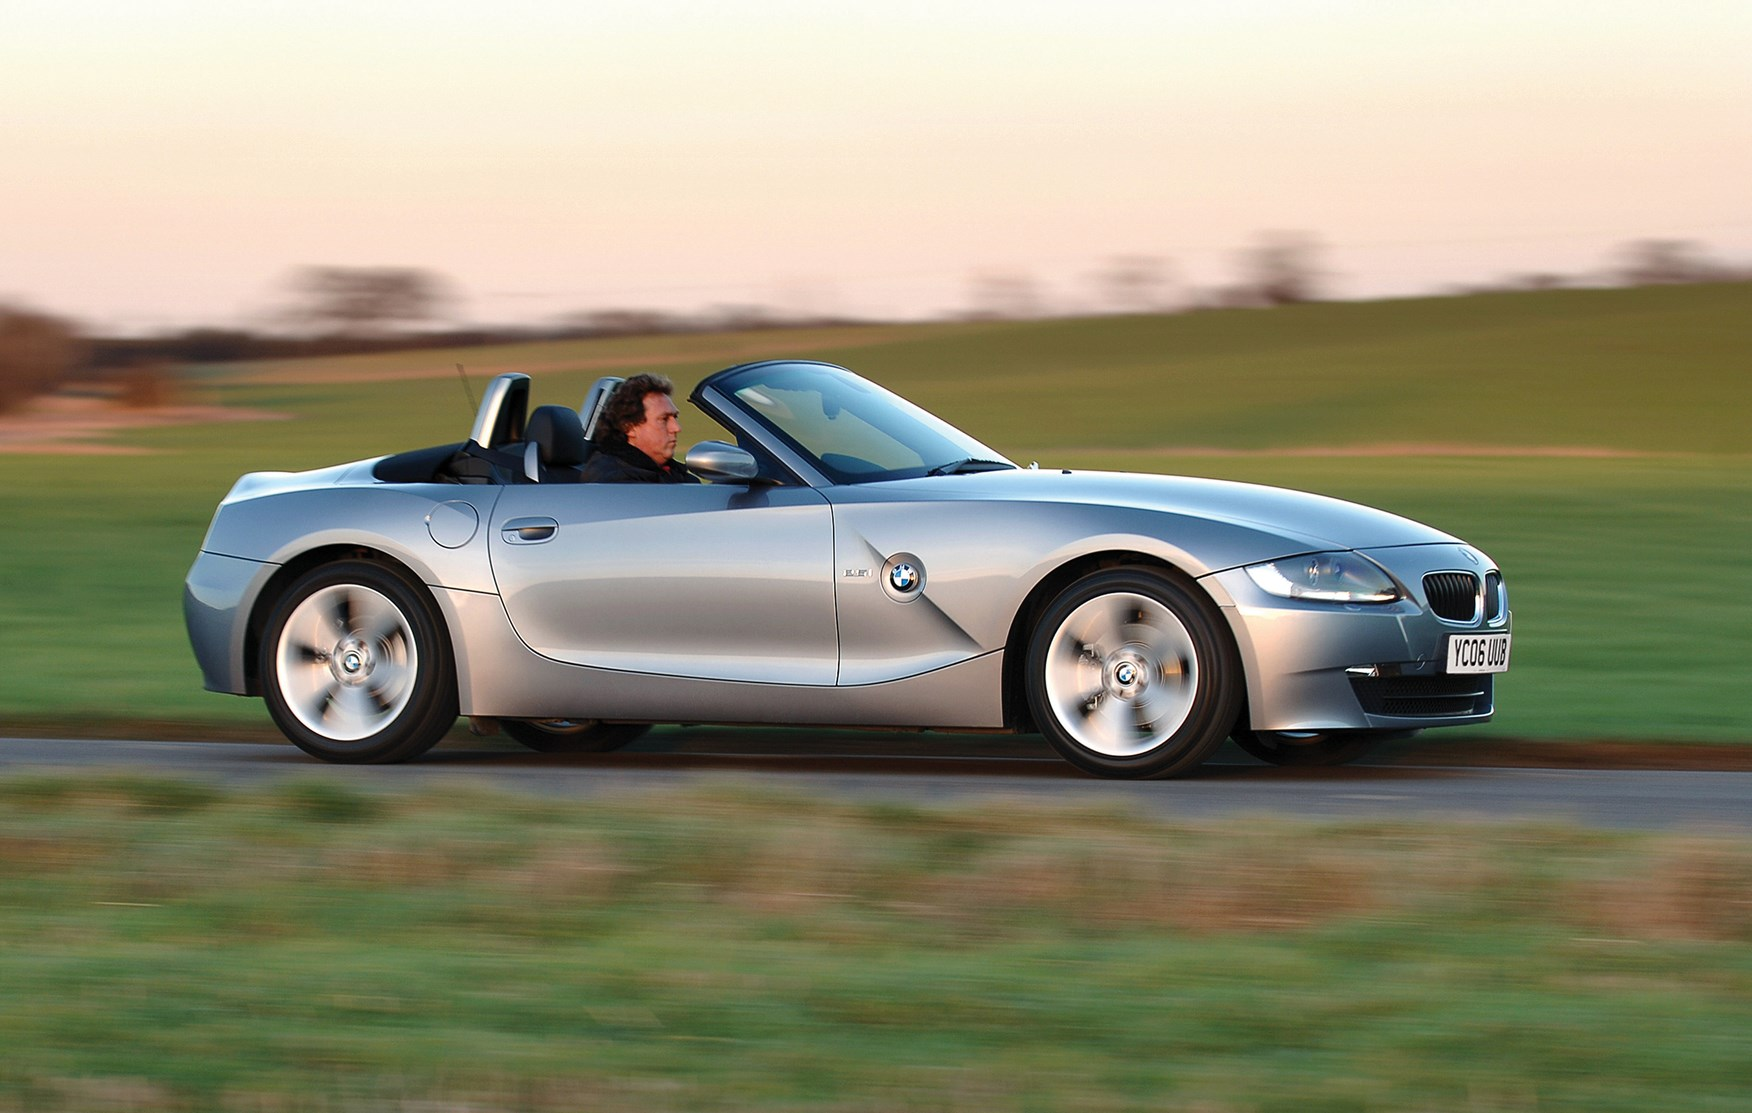 Bmw Z4 Faults Bmw Z4 Smg Problems Bmw Z4 Faults Bmw Z3